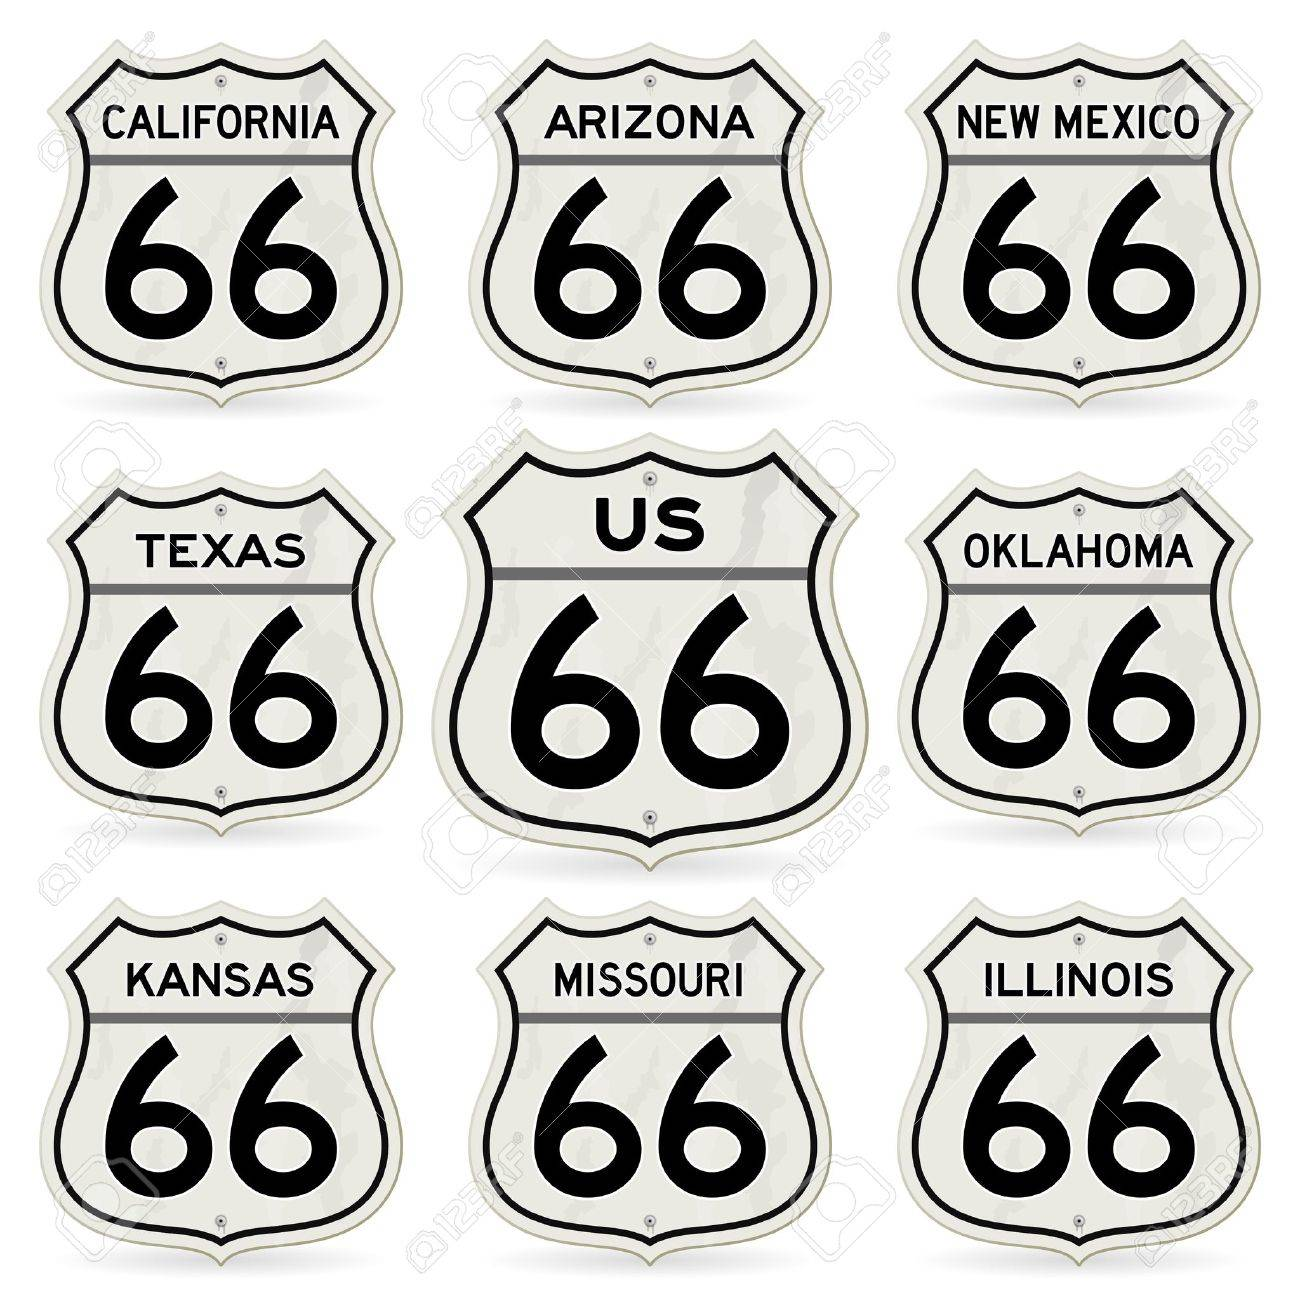 Complete Route 66 Signs Collection Stock Vector - 12274692